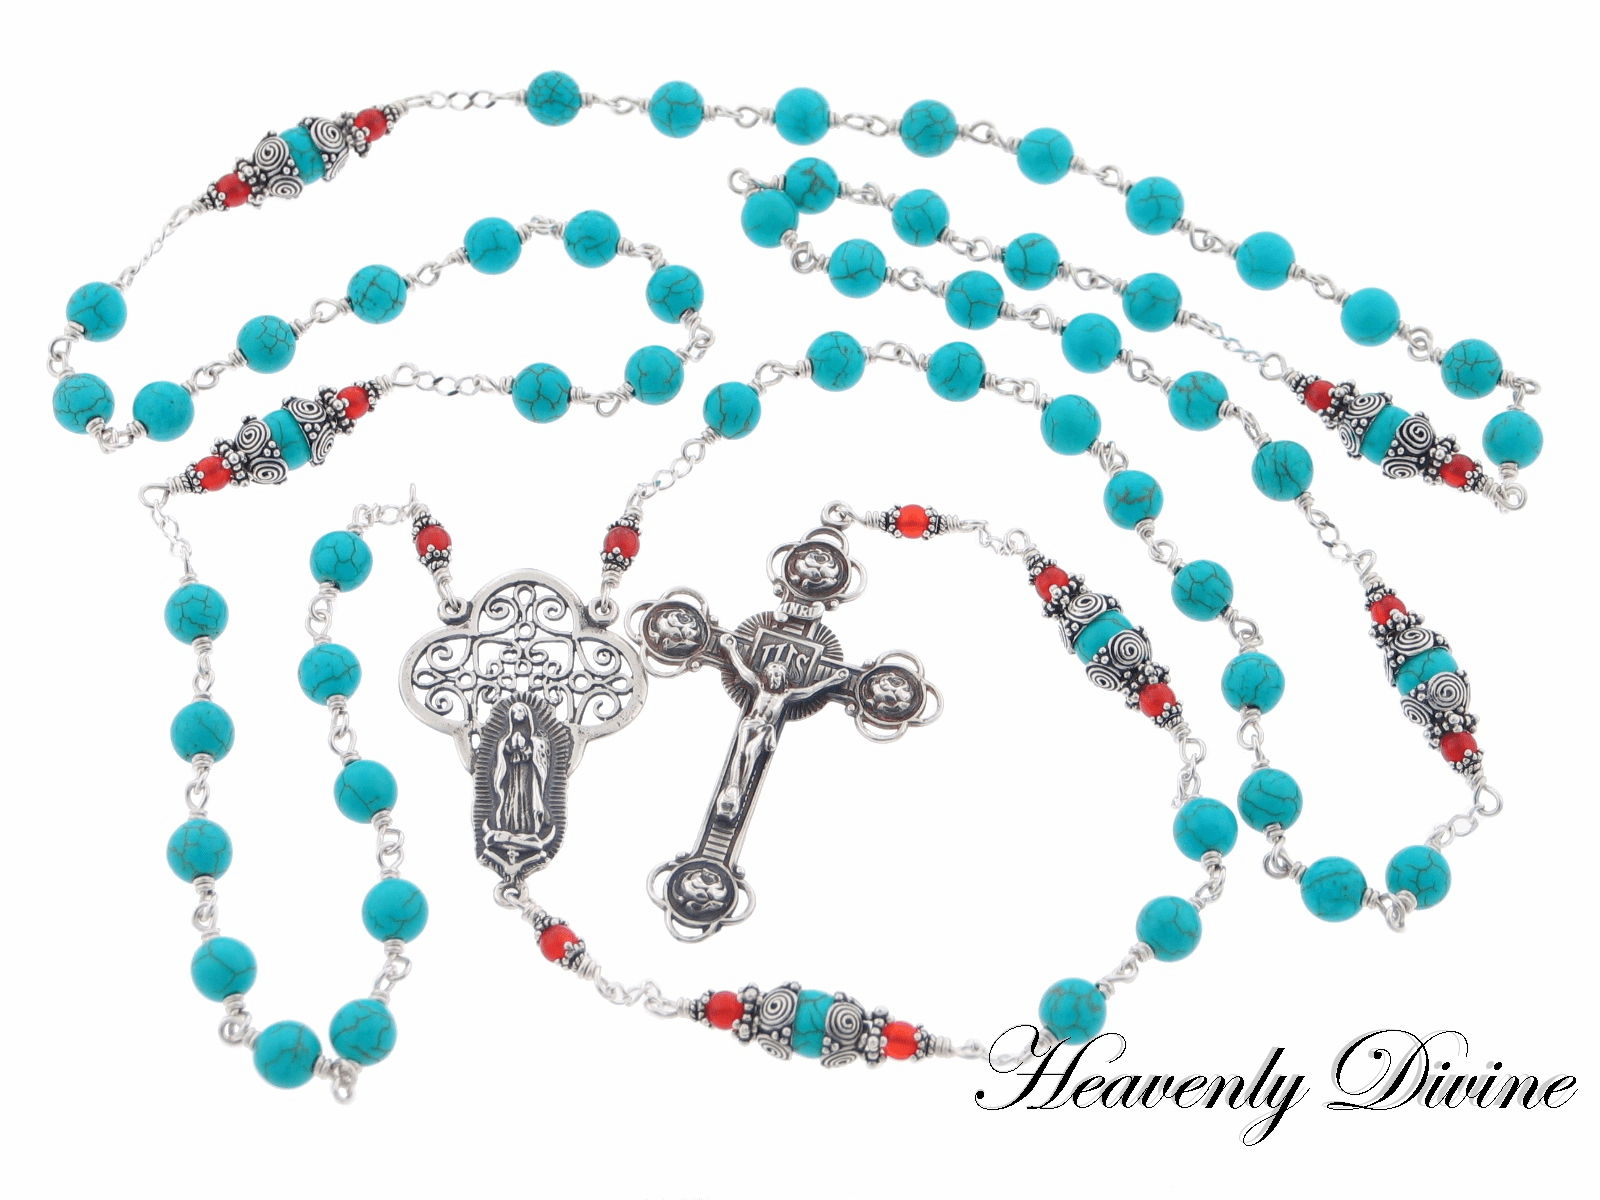 Handmade Our Lady of Guadalupe Sterling Silver Wire-Wrapped Rosary by Heavenly Divine